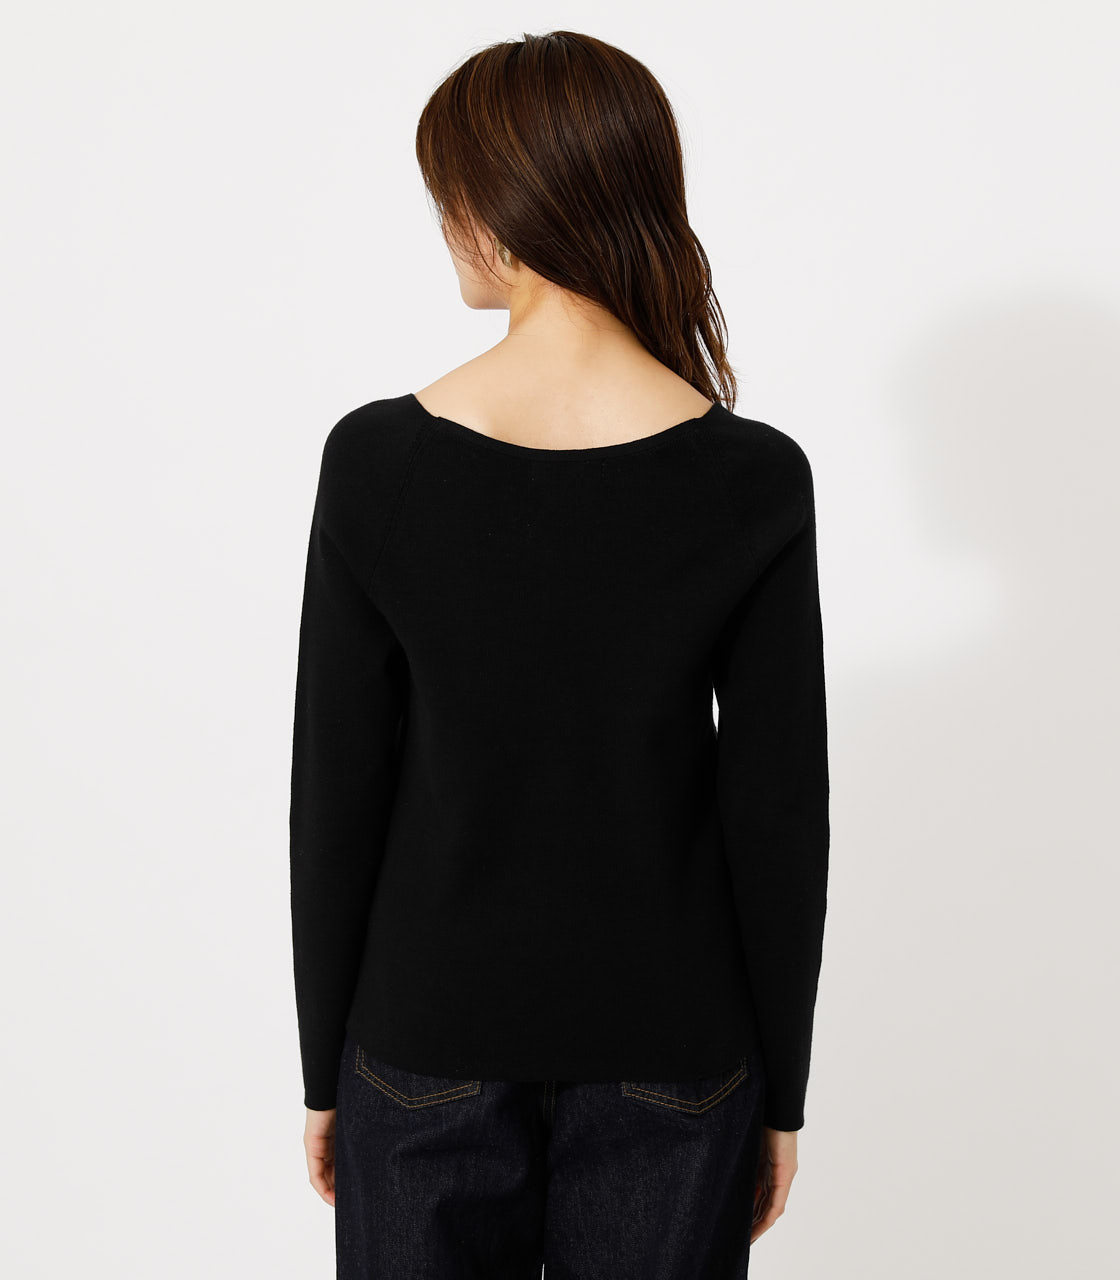 SCALLOP KNIT TOPS/スカルプニットトップス 詳細画像 BLK 6